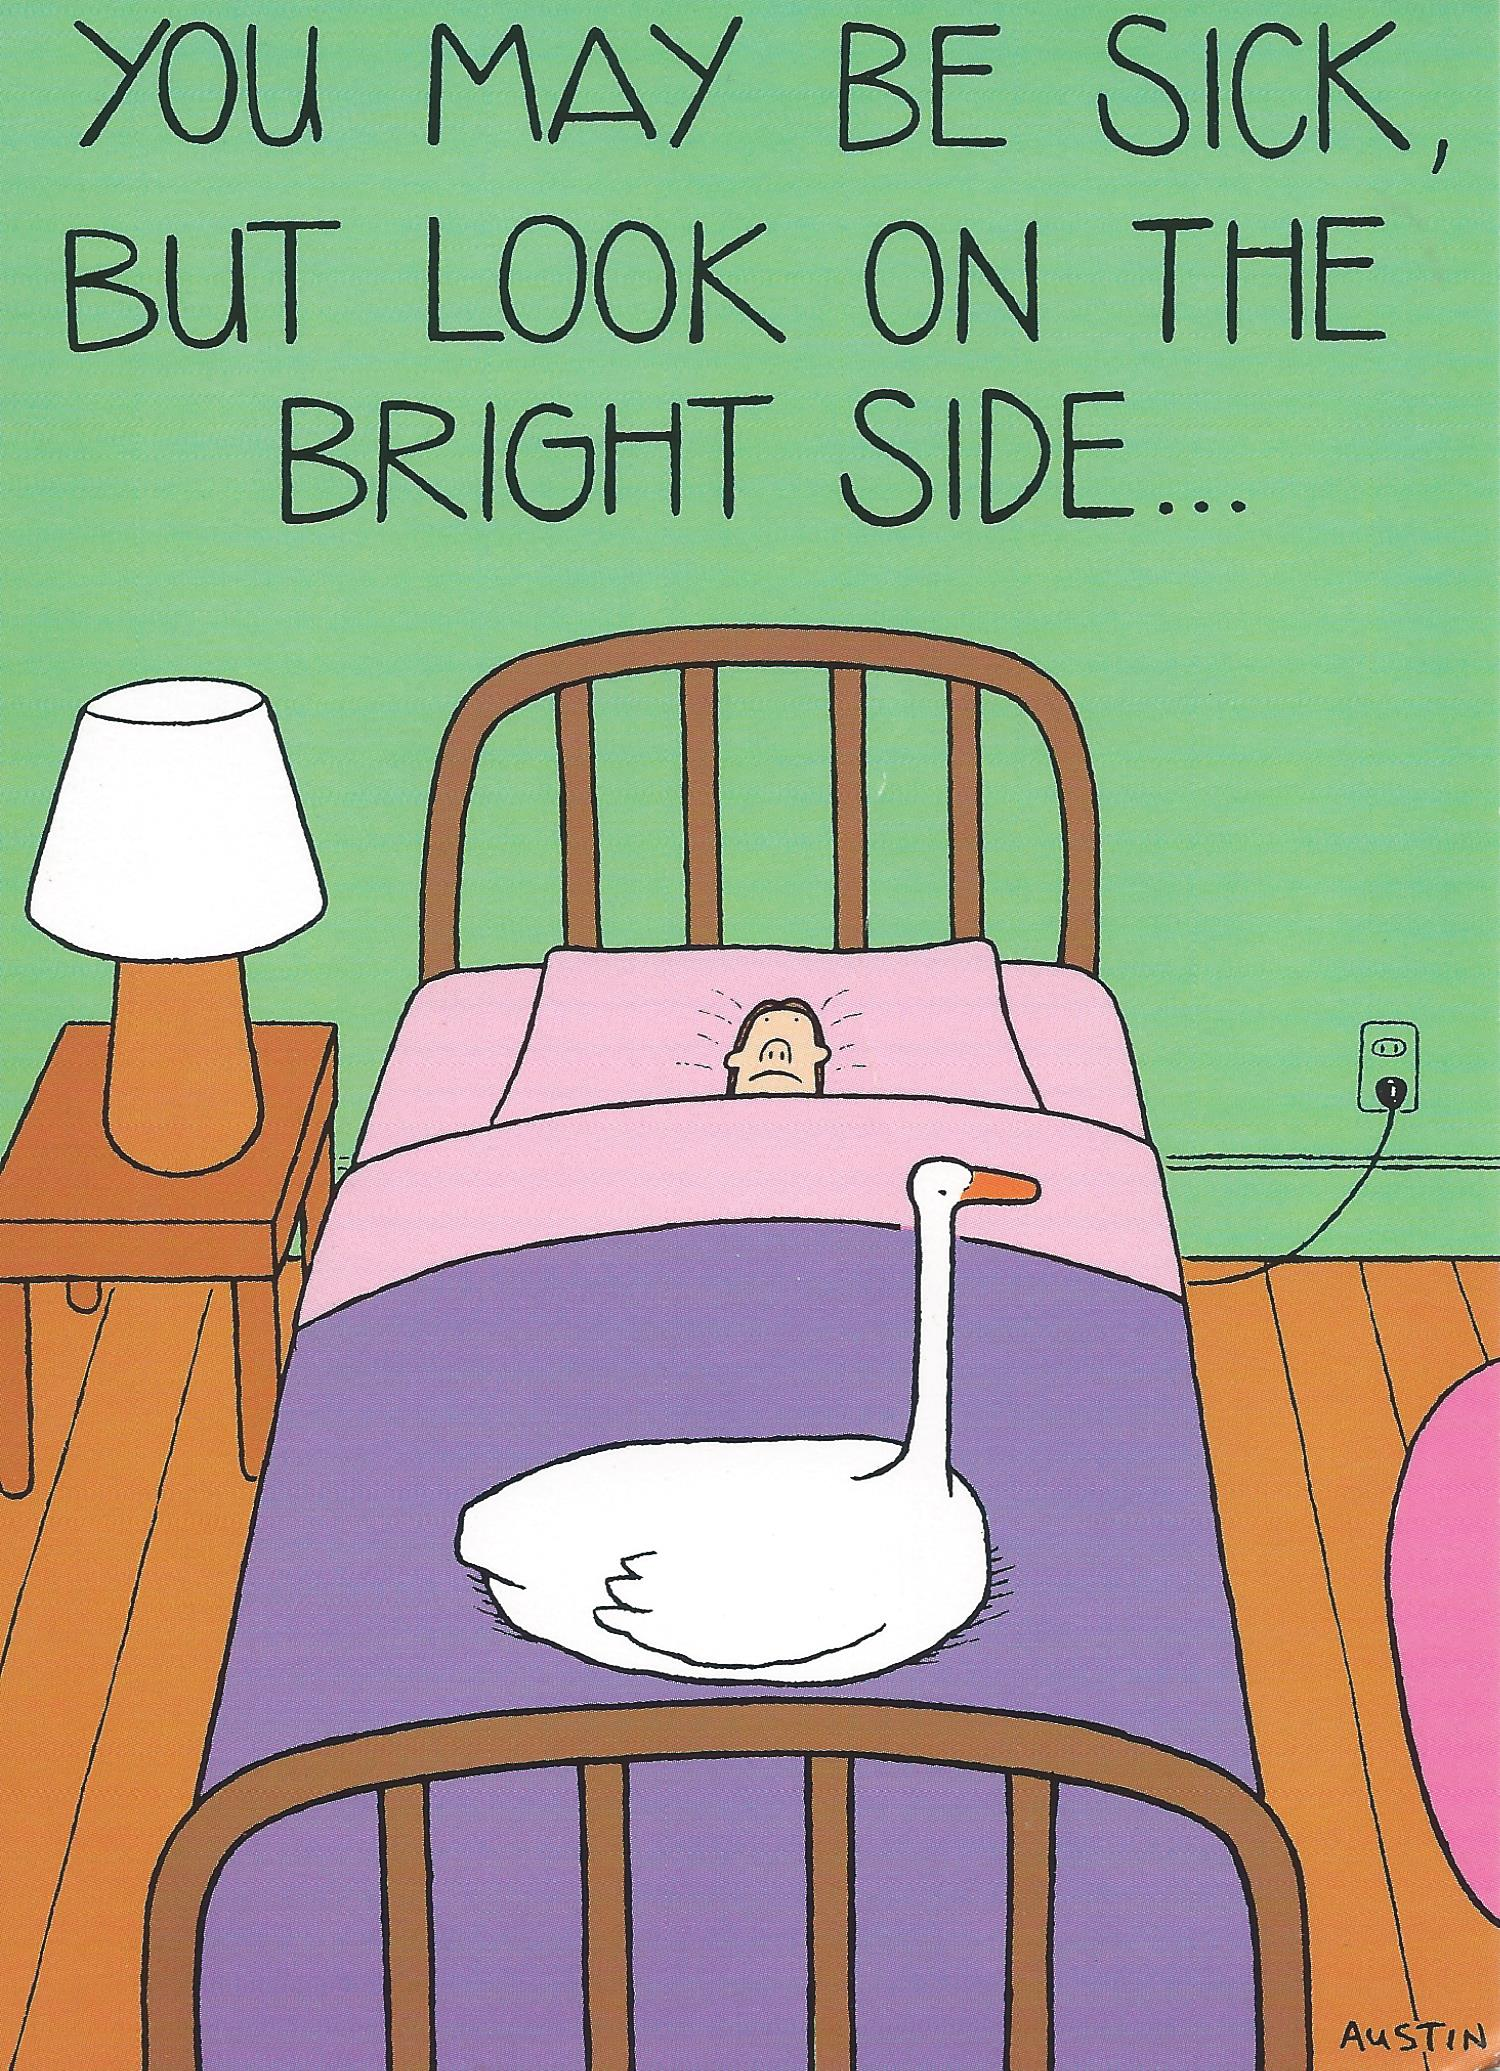 You may be sick, but look on the bright side...